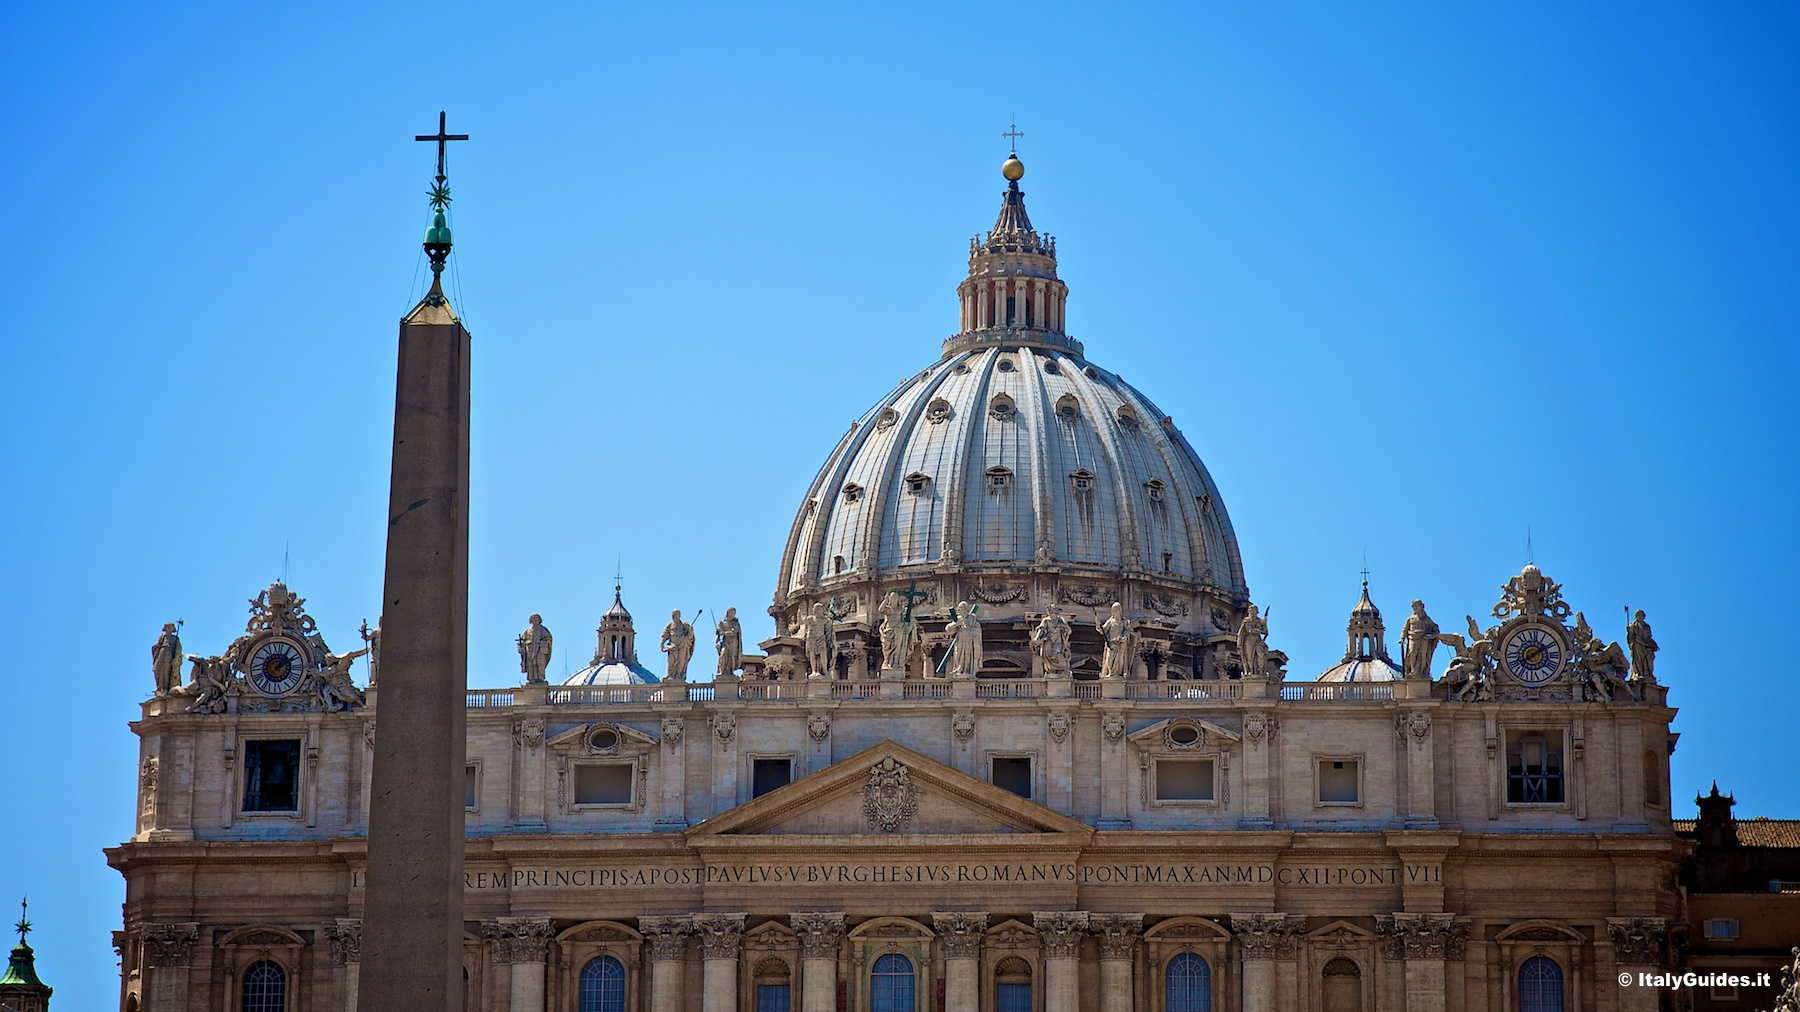 Ipad Wallpaper Hd Free Pictures Of St Peter S Basilica Rome Italy